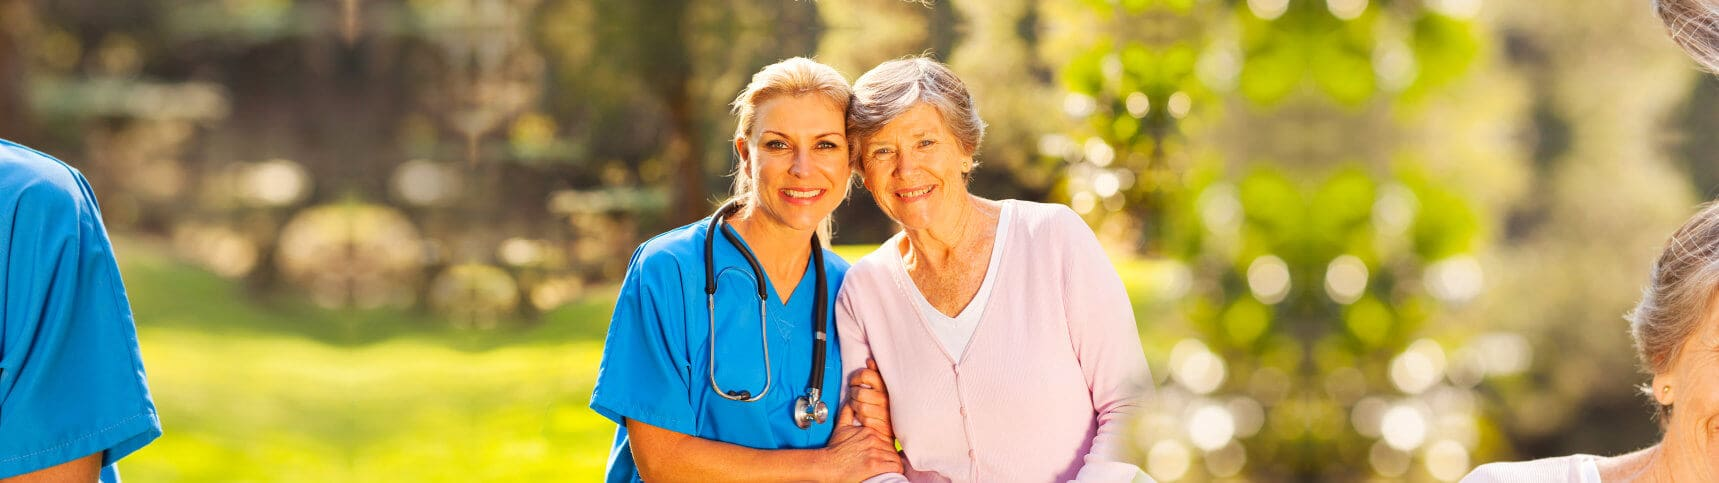 smiling old woman and nurse